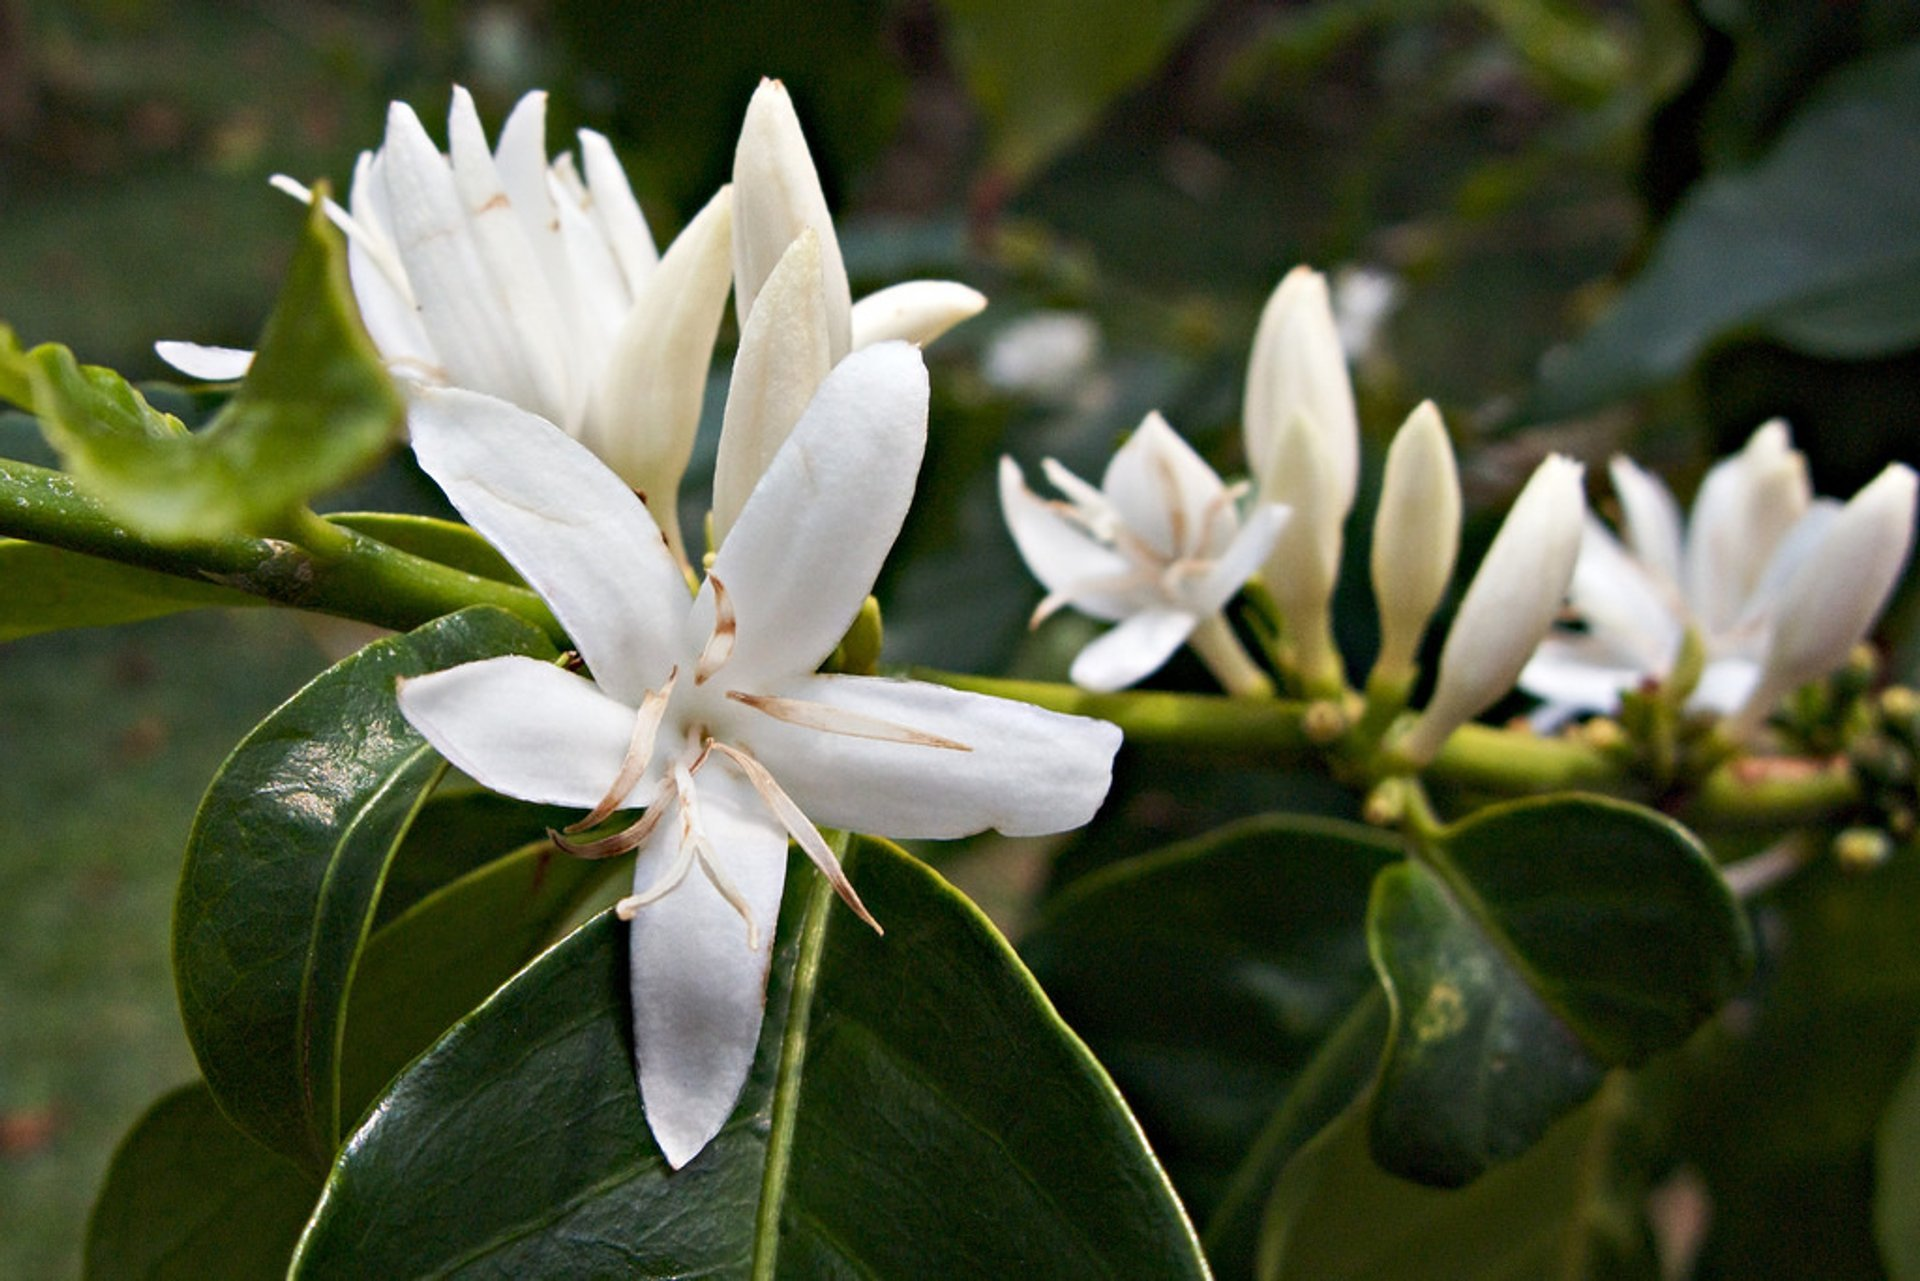 Kona Coffee Blossom or 'Kona Snow' in Hawaii 2019 - Best Time